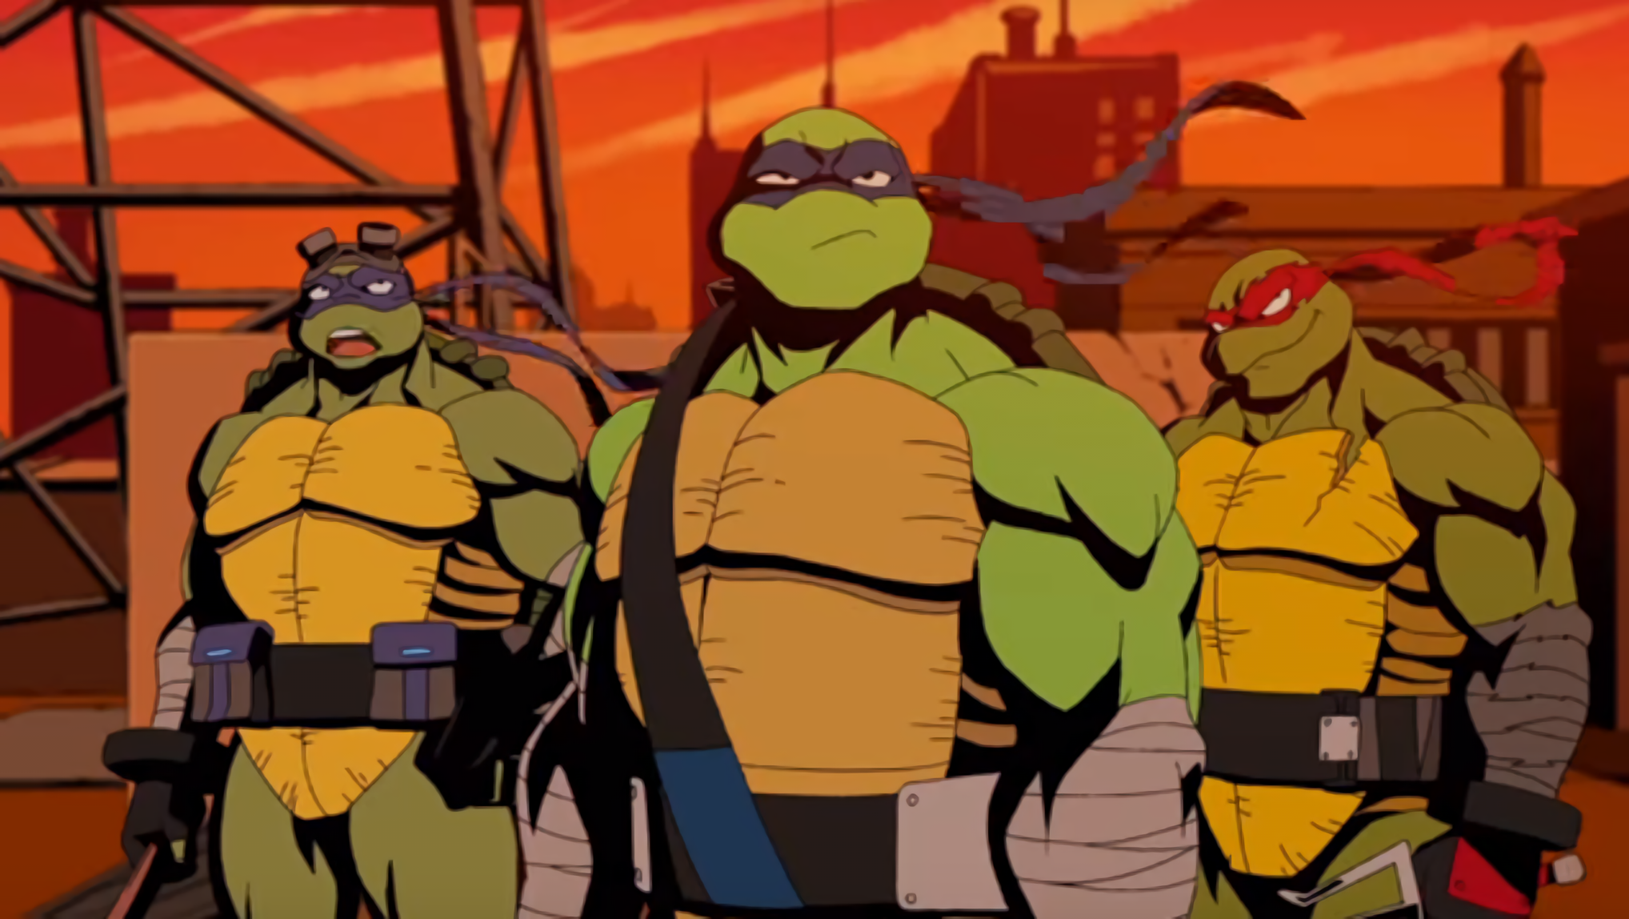 TMNT San Diego Comic-Con 2016 Animated Shorts